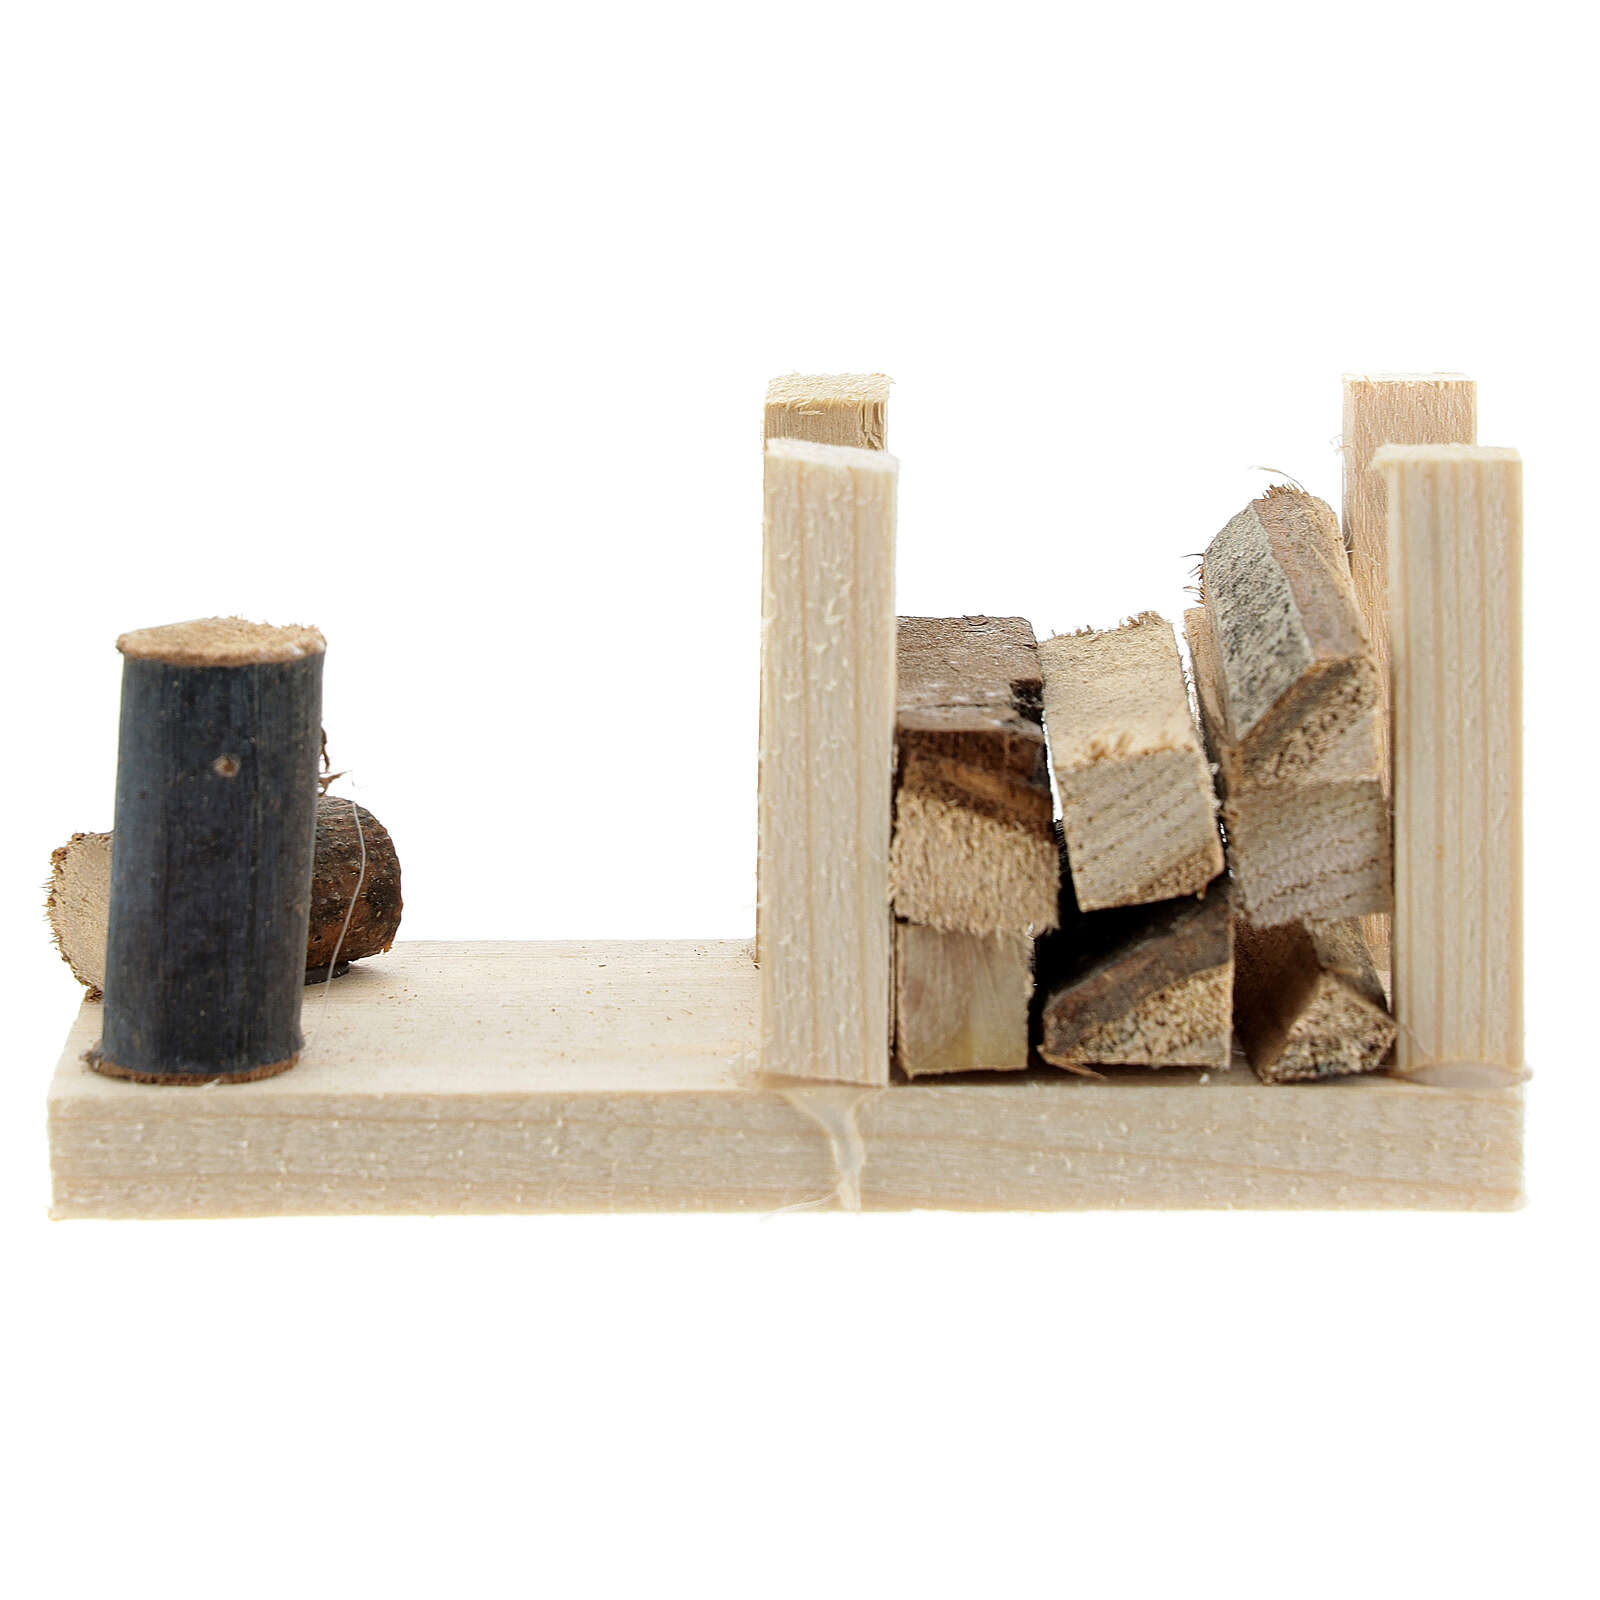 Woodshed 6x12x6 cm for Nativity Scene with 12-14 cm figurines 4